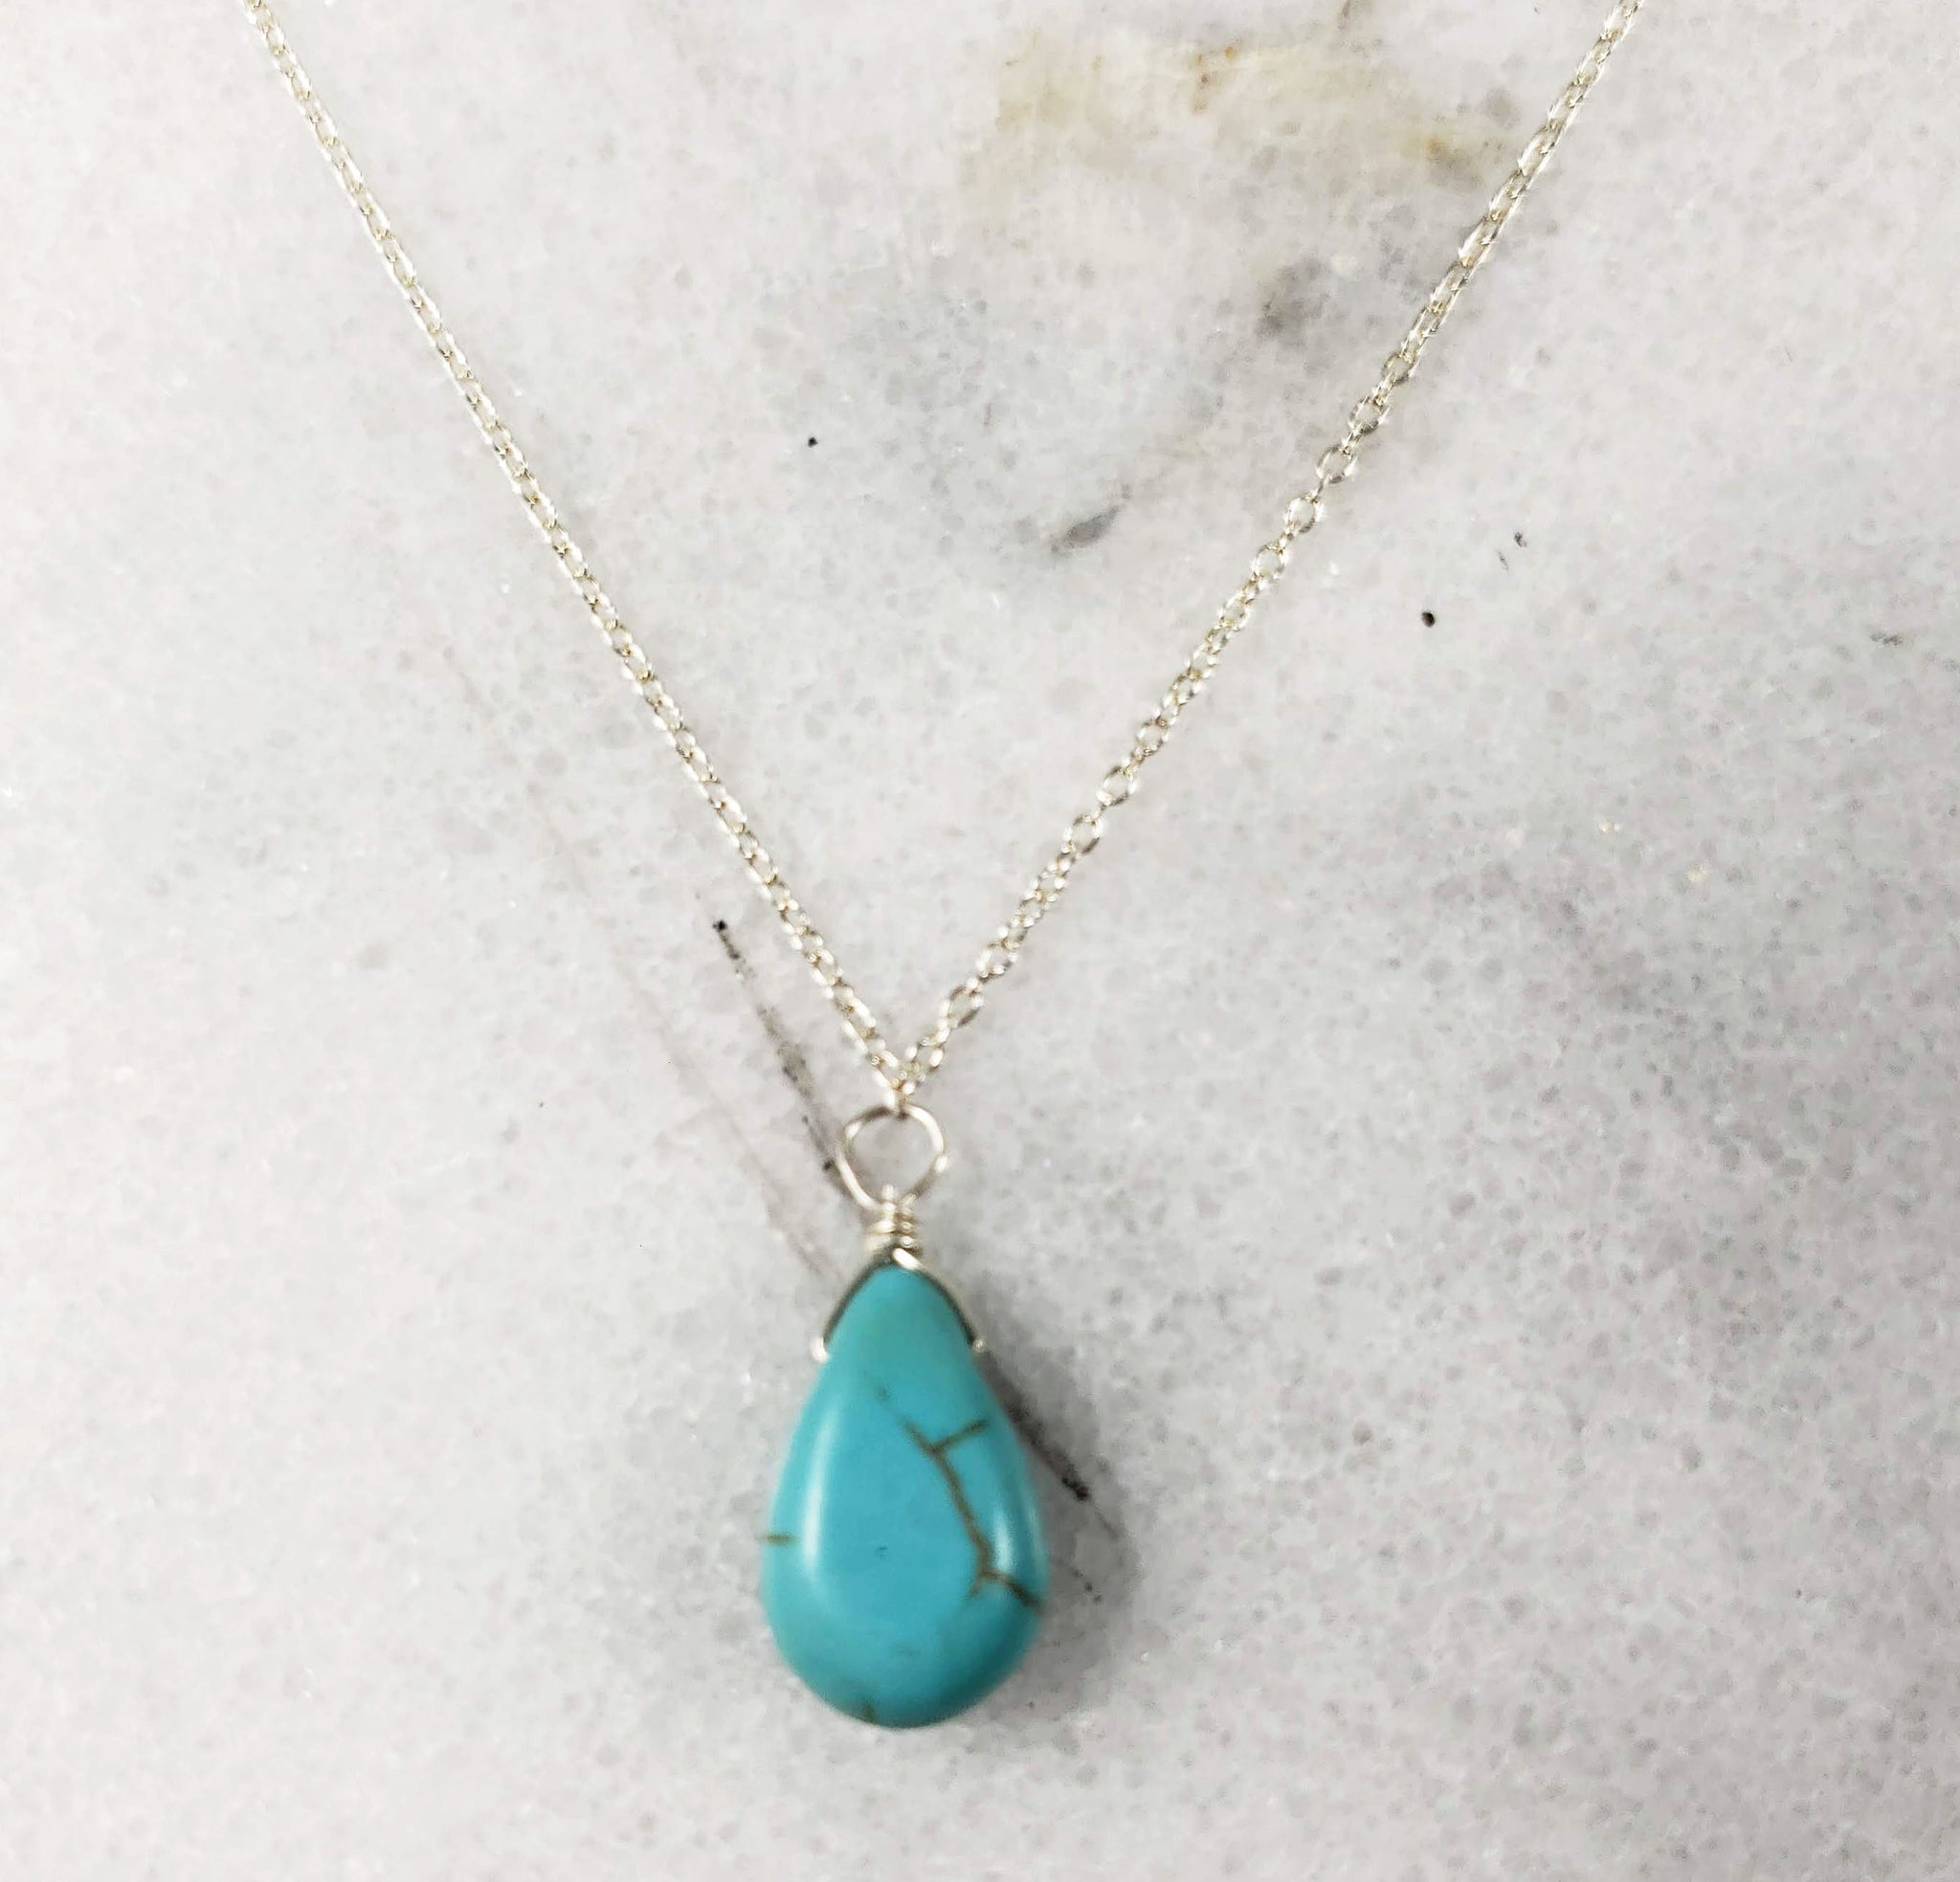 Turquoise  Necklace minimalist chains in Sterling Silver, Rose Gold or Gold